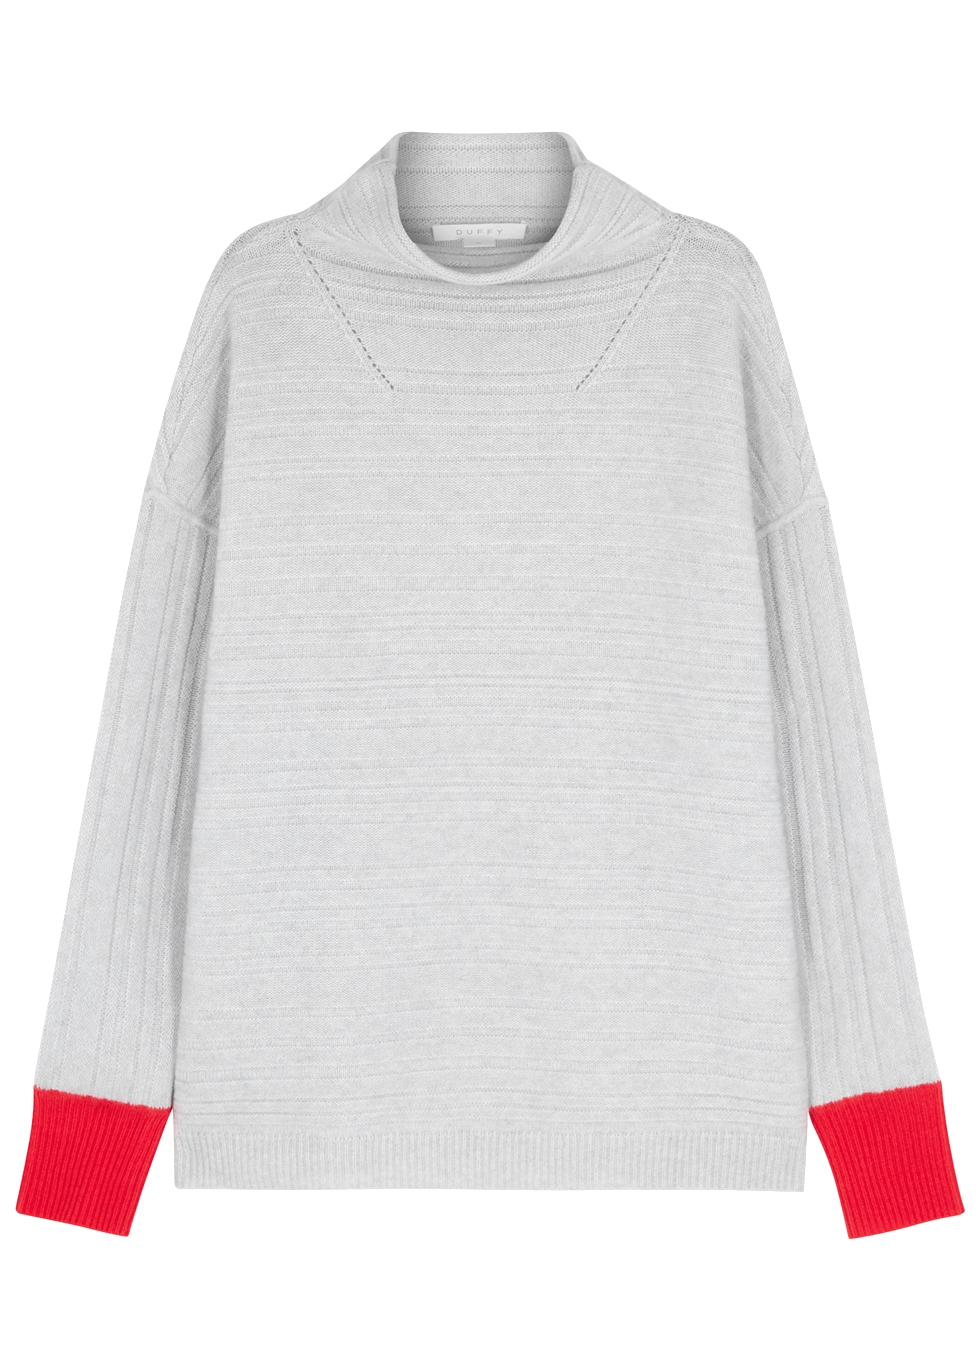 DUFFY GREY TEXTURED-KNIT CASHMERE JUMPER